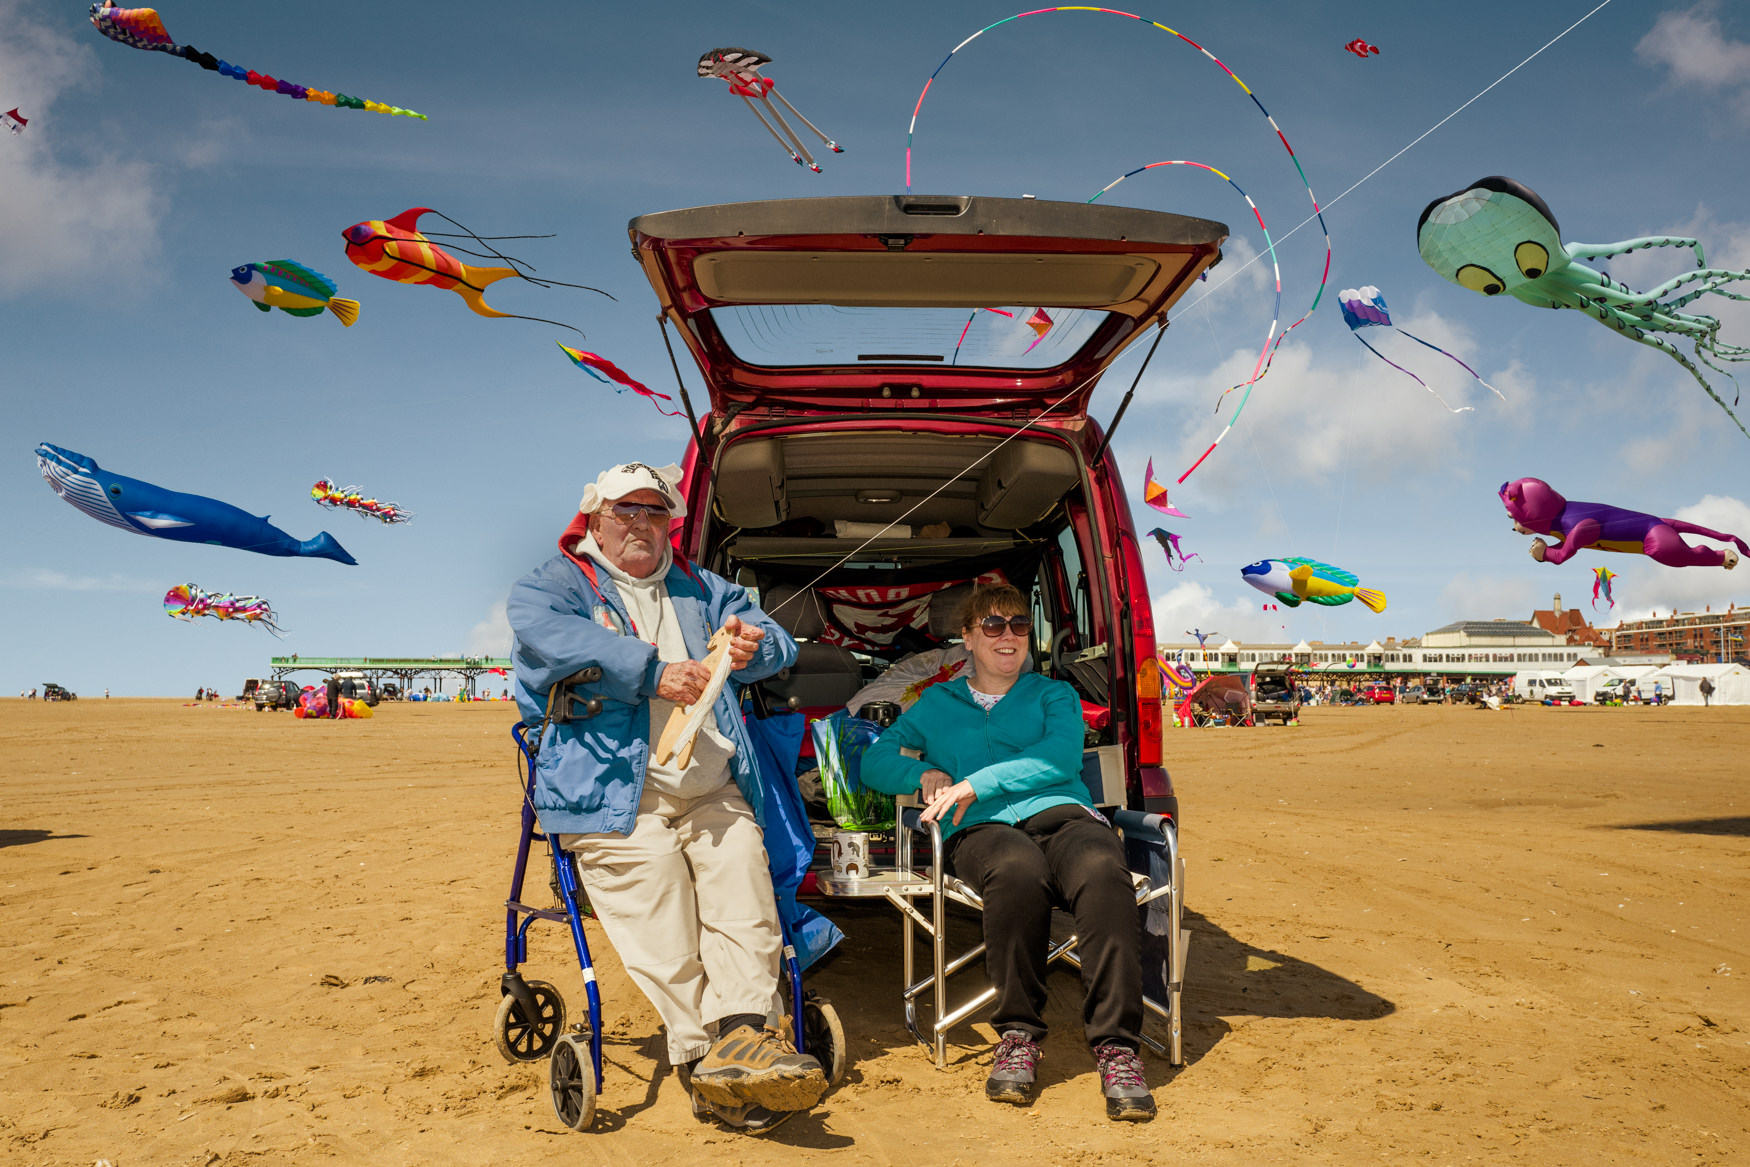 150725_Gary_Salter_St_Annes_on_Sea_Blackpool_UK__Leica_LEICA Q_Street_Photography-3.jpg